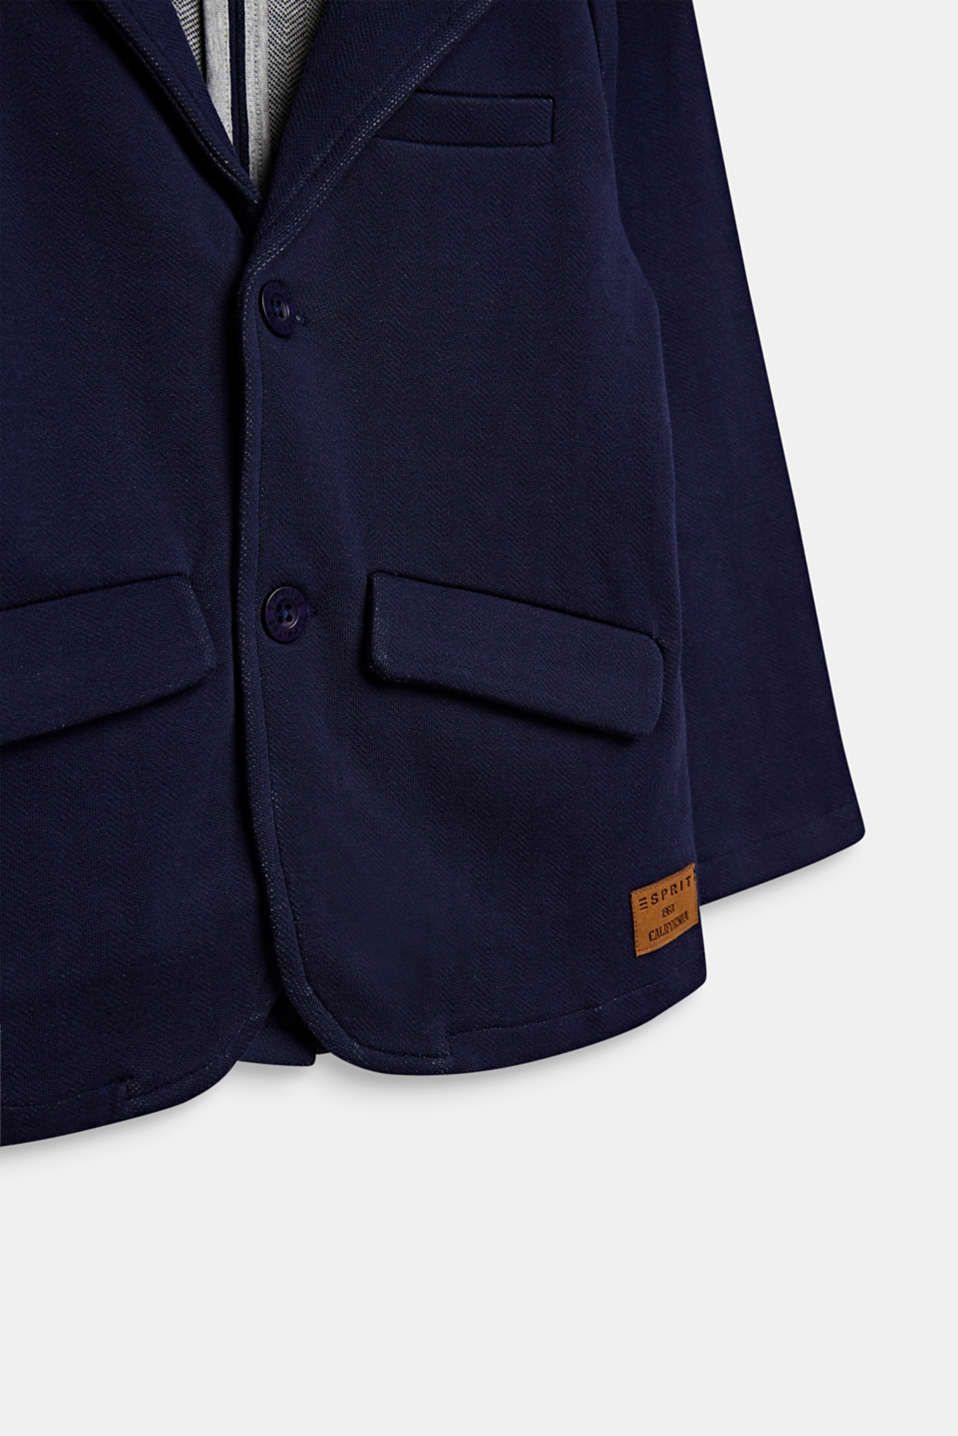 Sweatshirt fabric blazer with elbow patches, ULTRAMARINE, detail image number 2